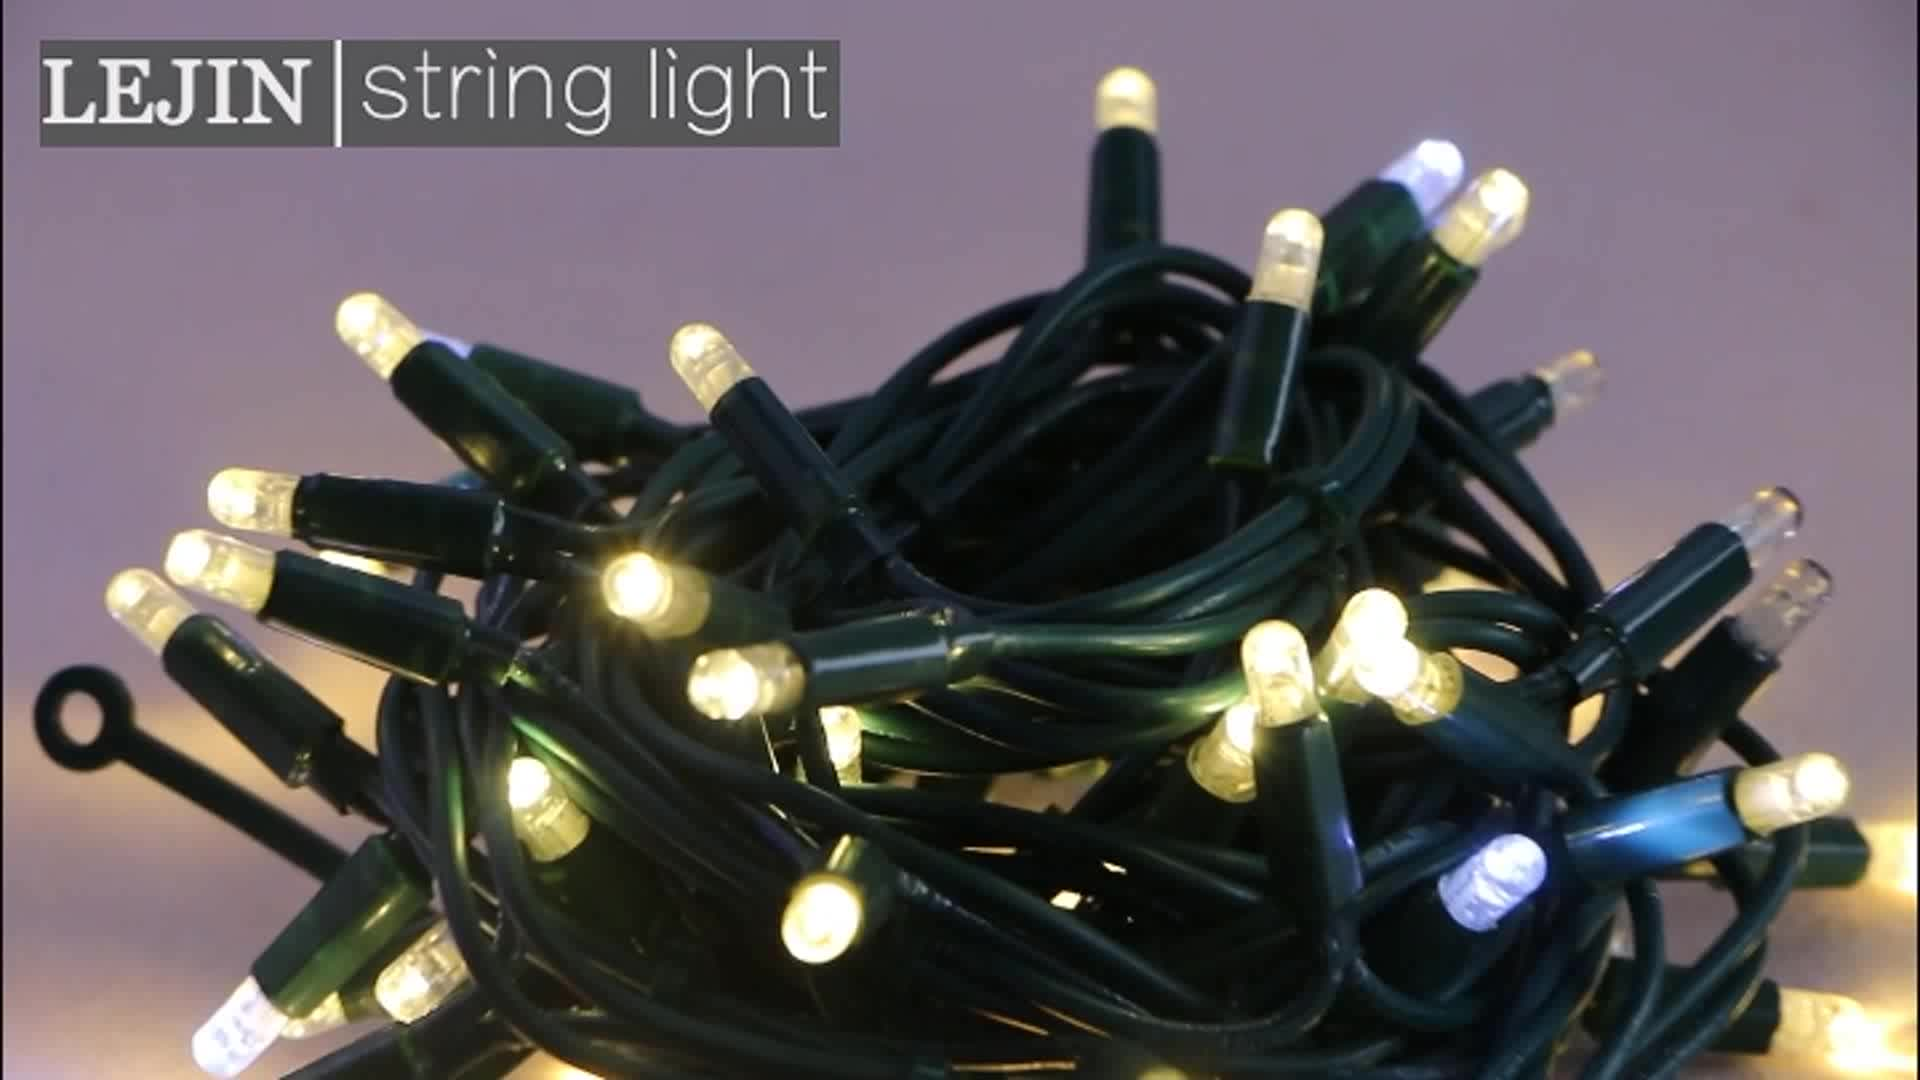 Rubber Wire Led String Light For Indoor And Outdoor Use - Buy Rubber Wire Led String Lights ...